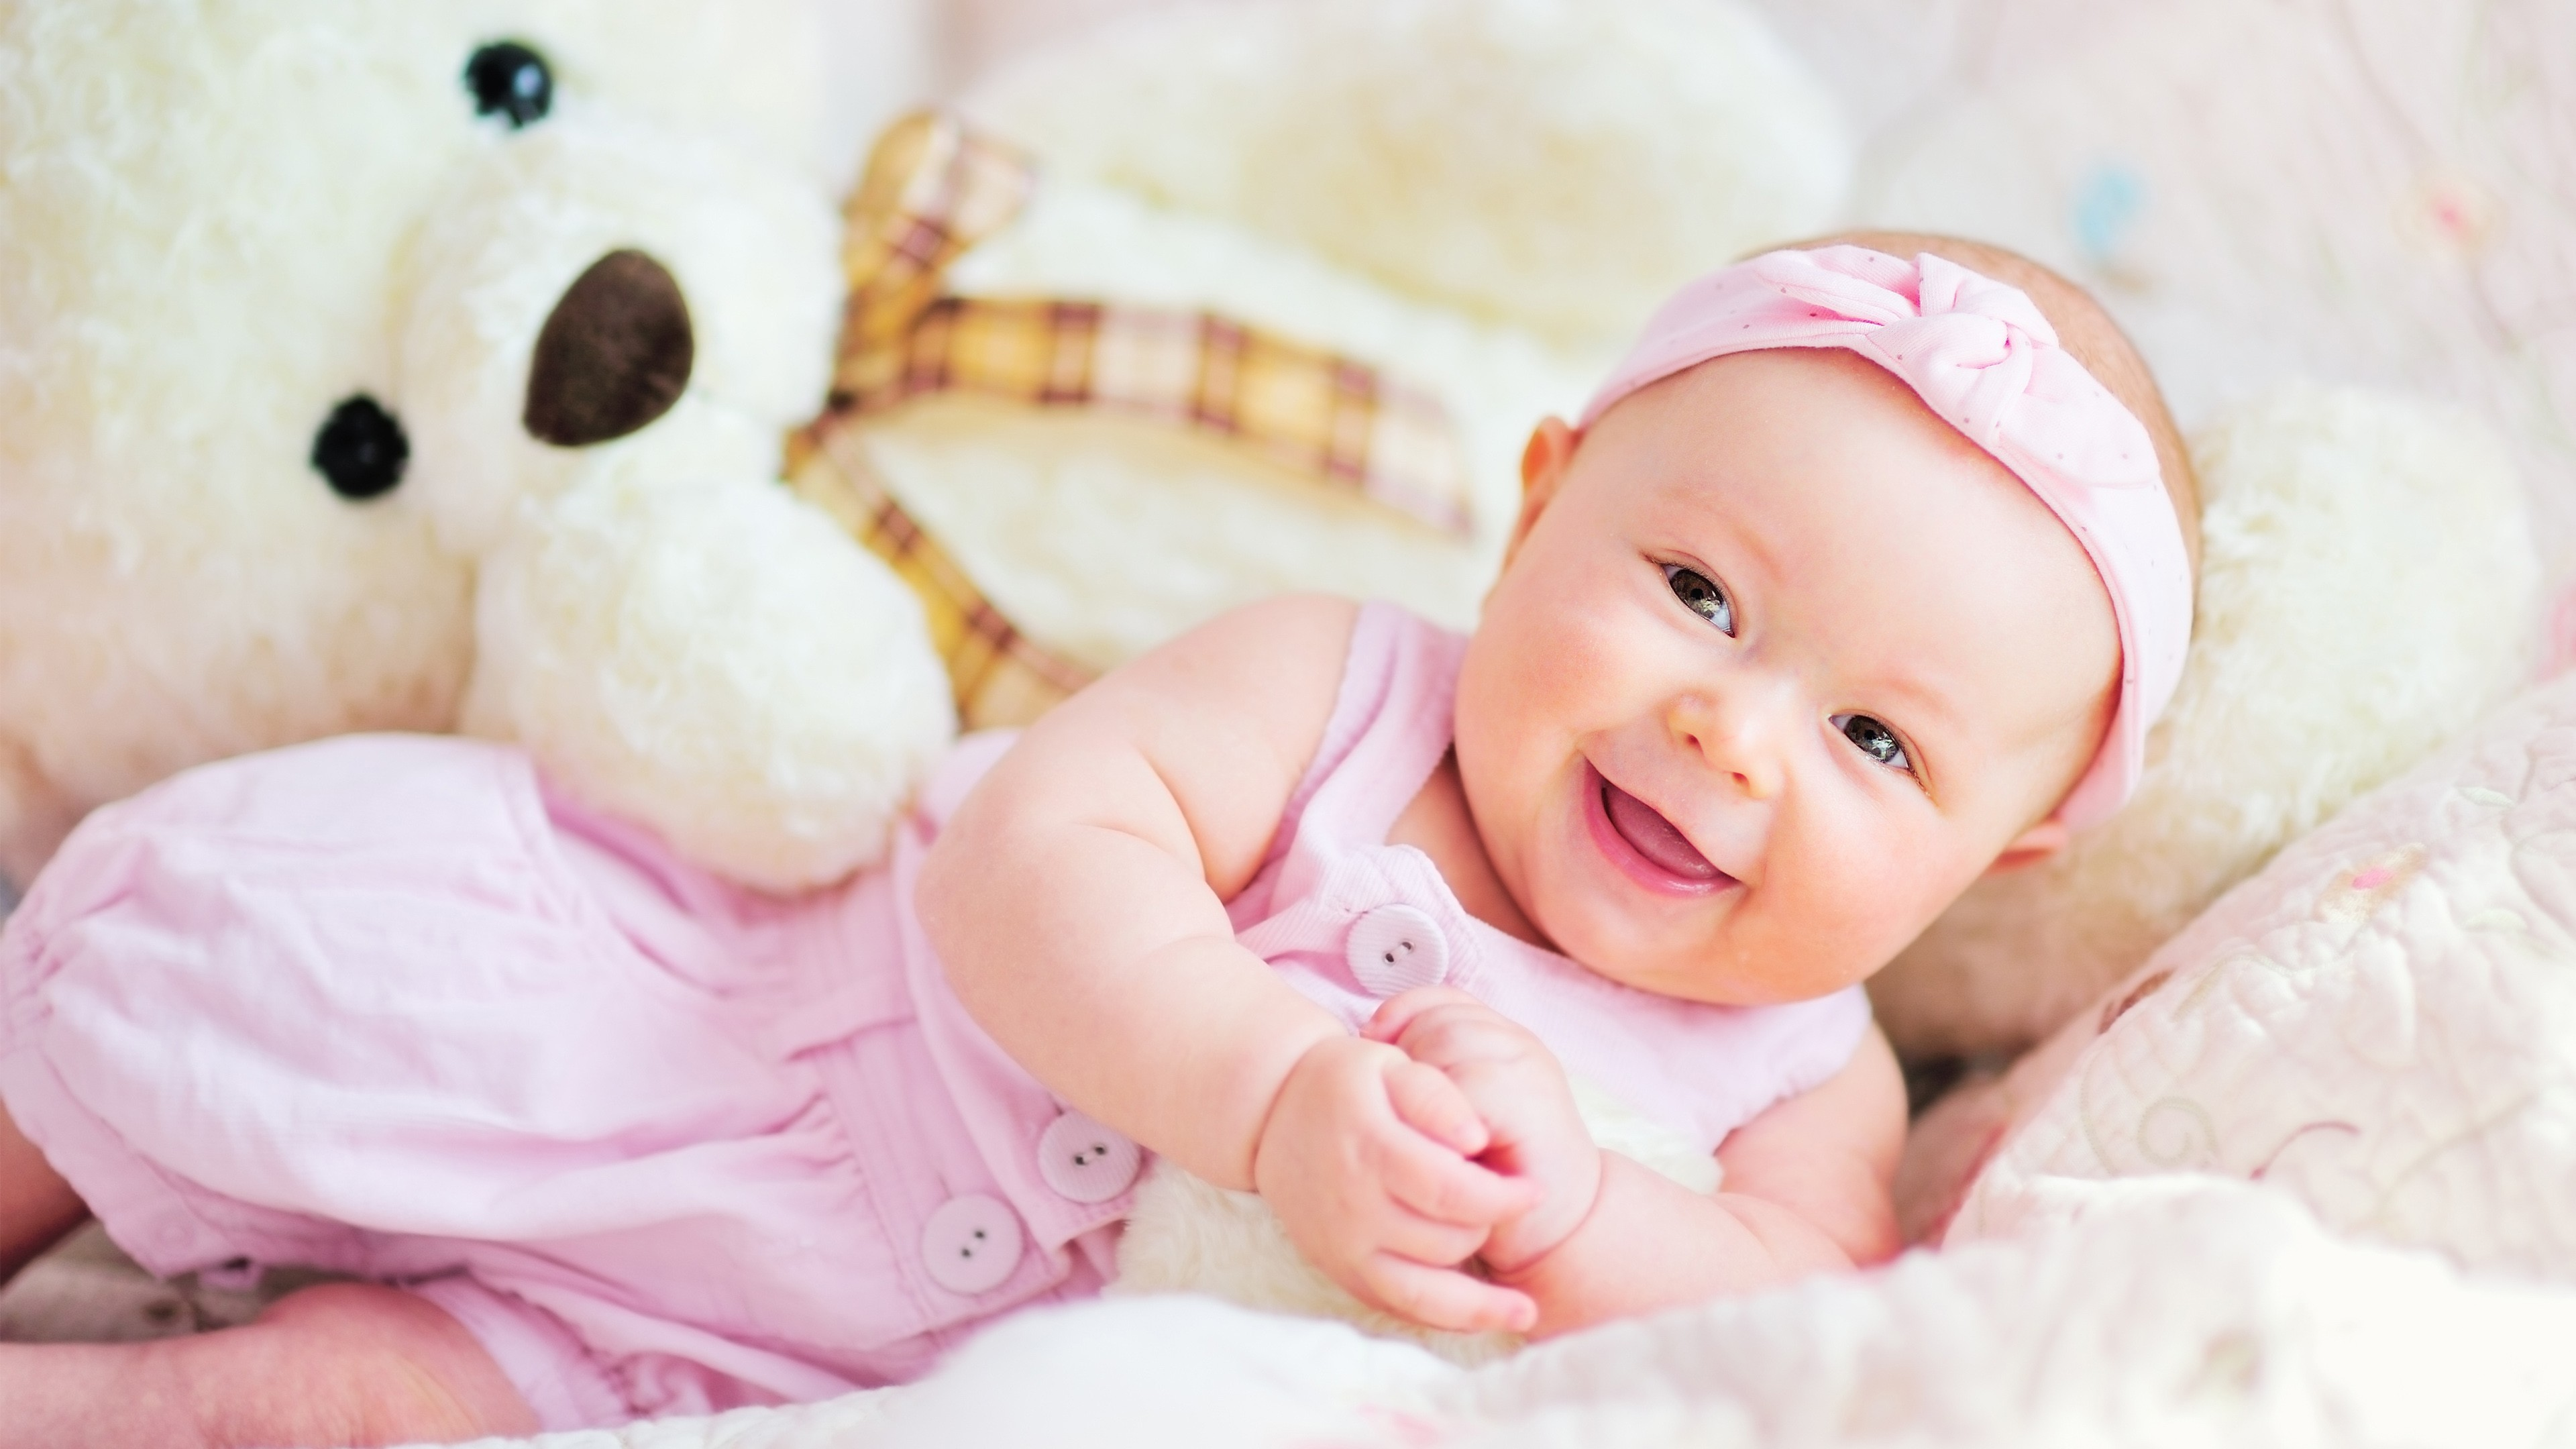 Res: 3840x2160, Cute Baby Wallpapers New Cute Baby Wallpapers Cute Babies